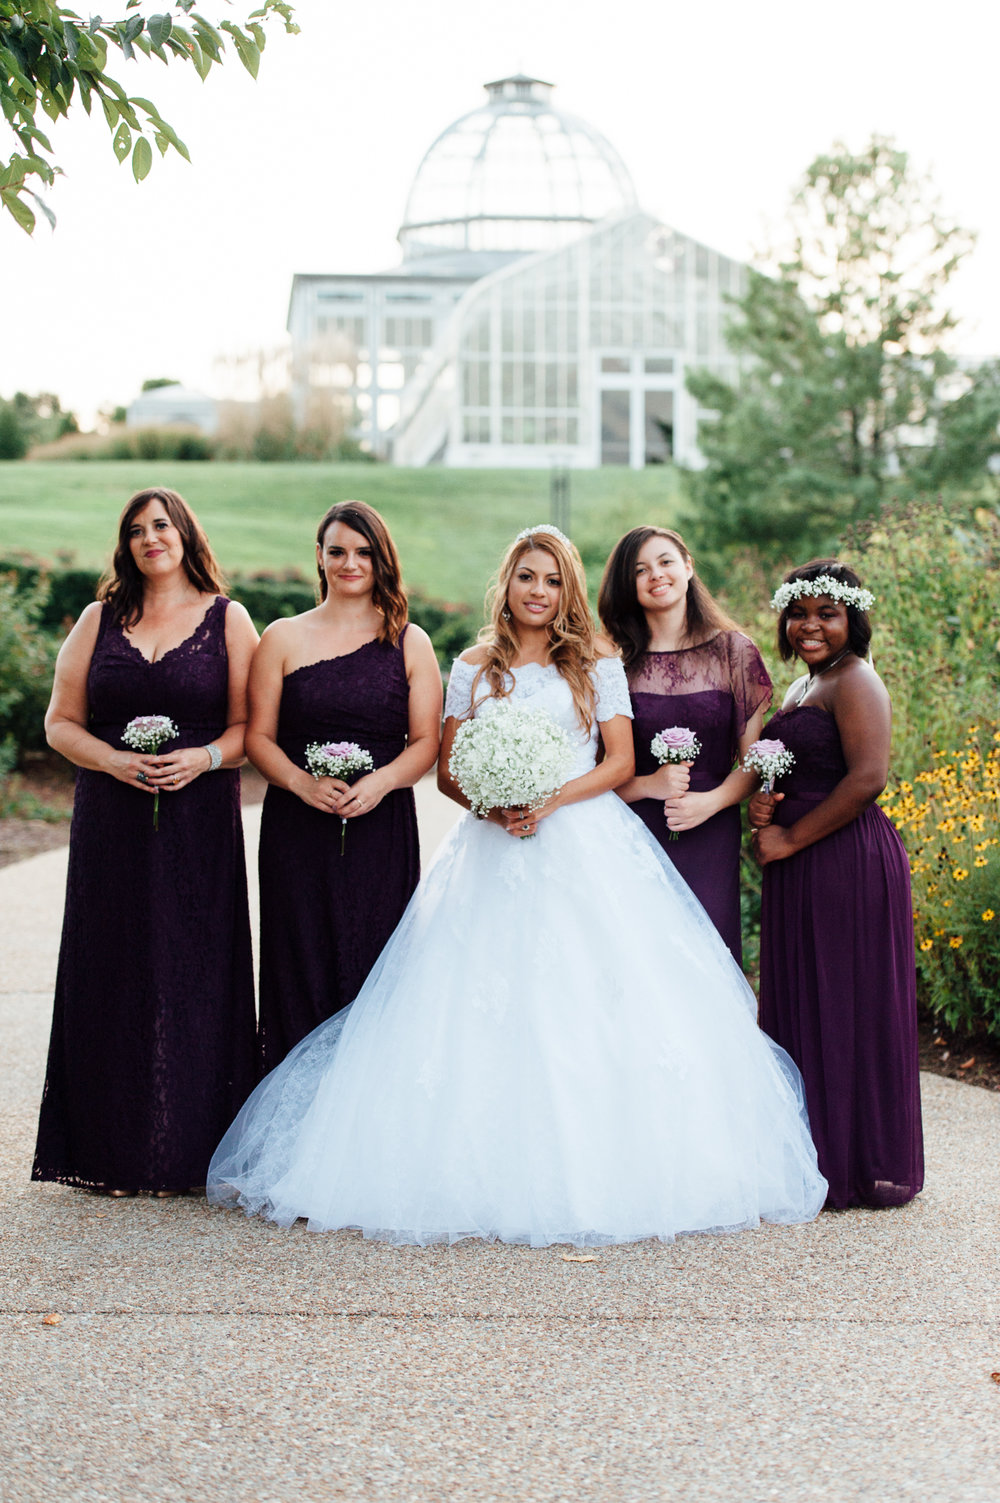 virginiawedding_LewisGinter_youseephotography_FarrinDaniel(19).jpg